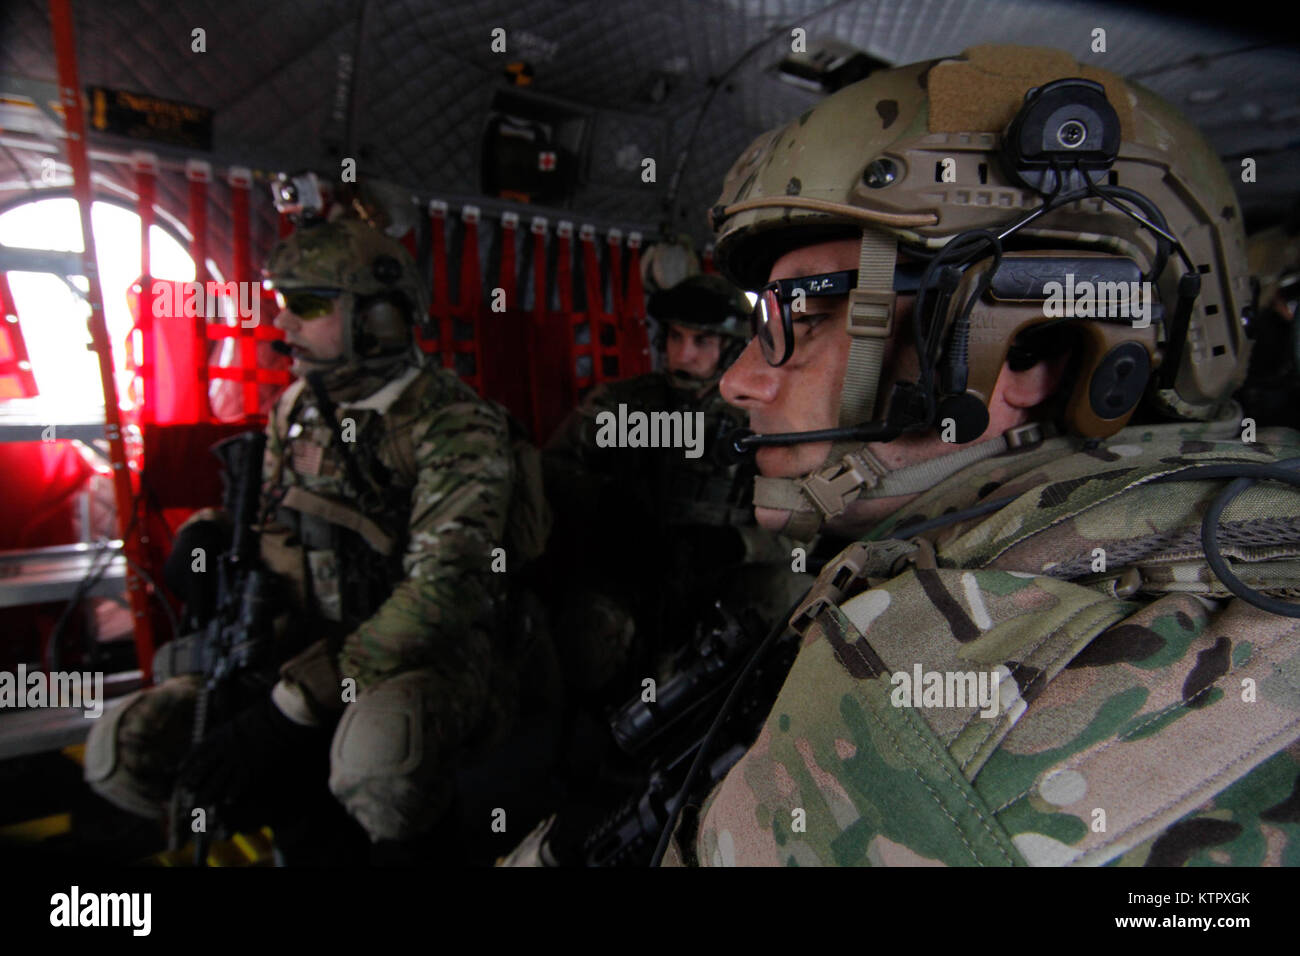 Air National Guard joint terminal air controllers from the 274th Air Support Operations Squadron prepare to disembark - Stock Image